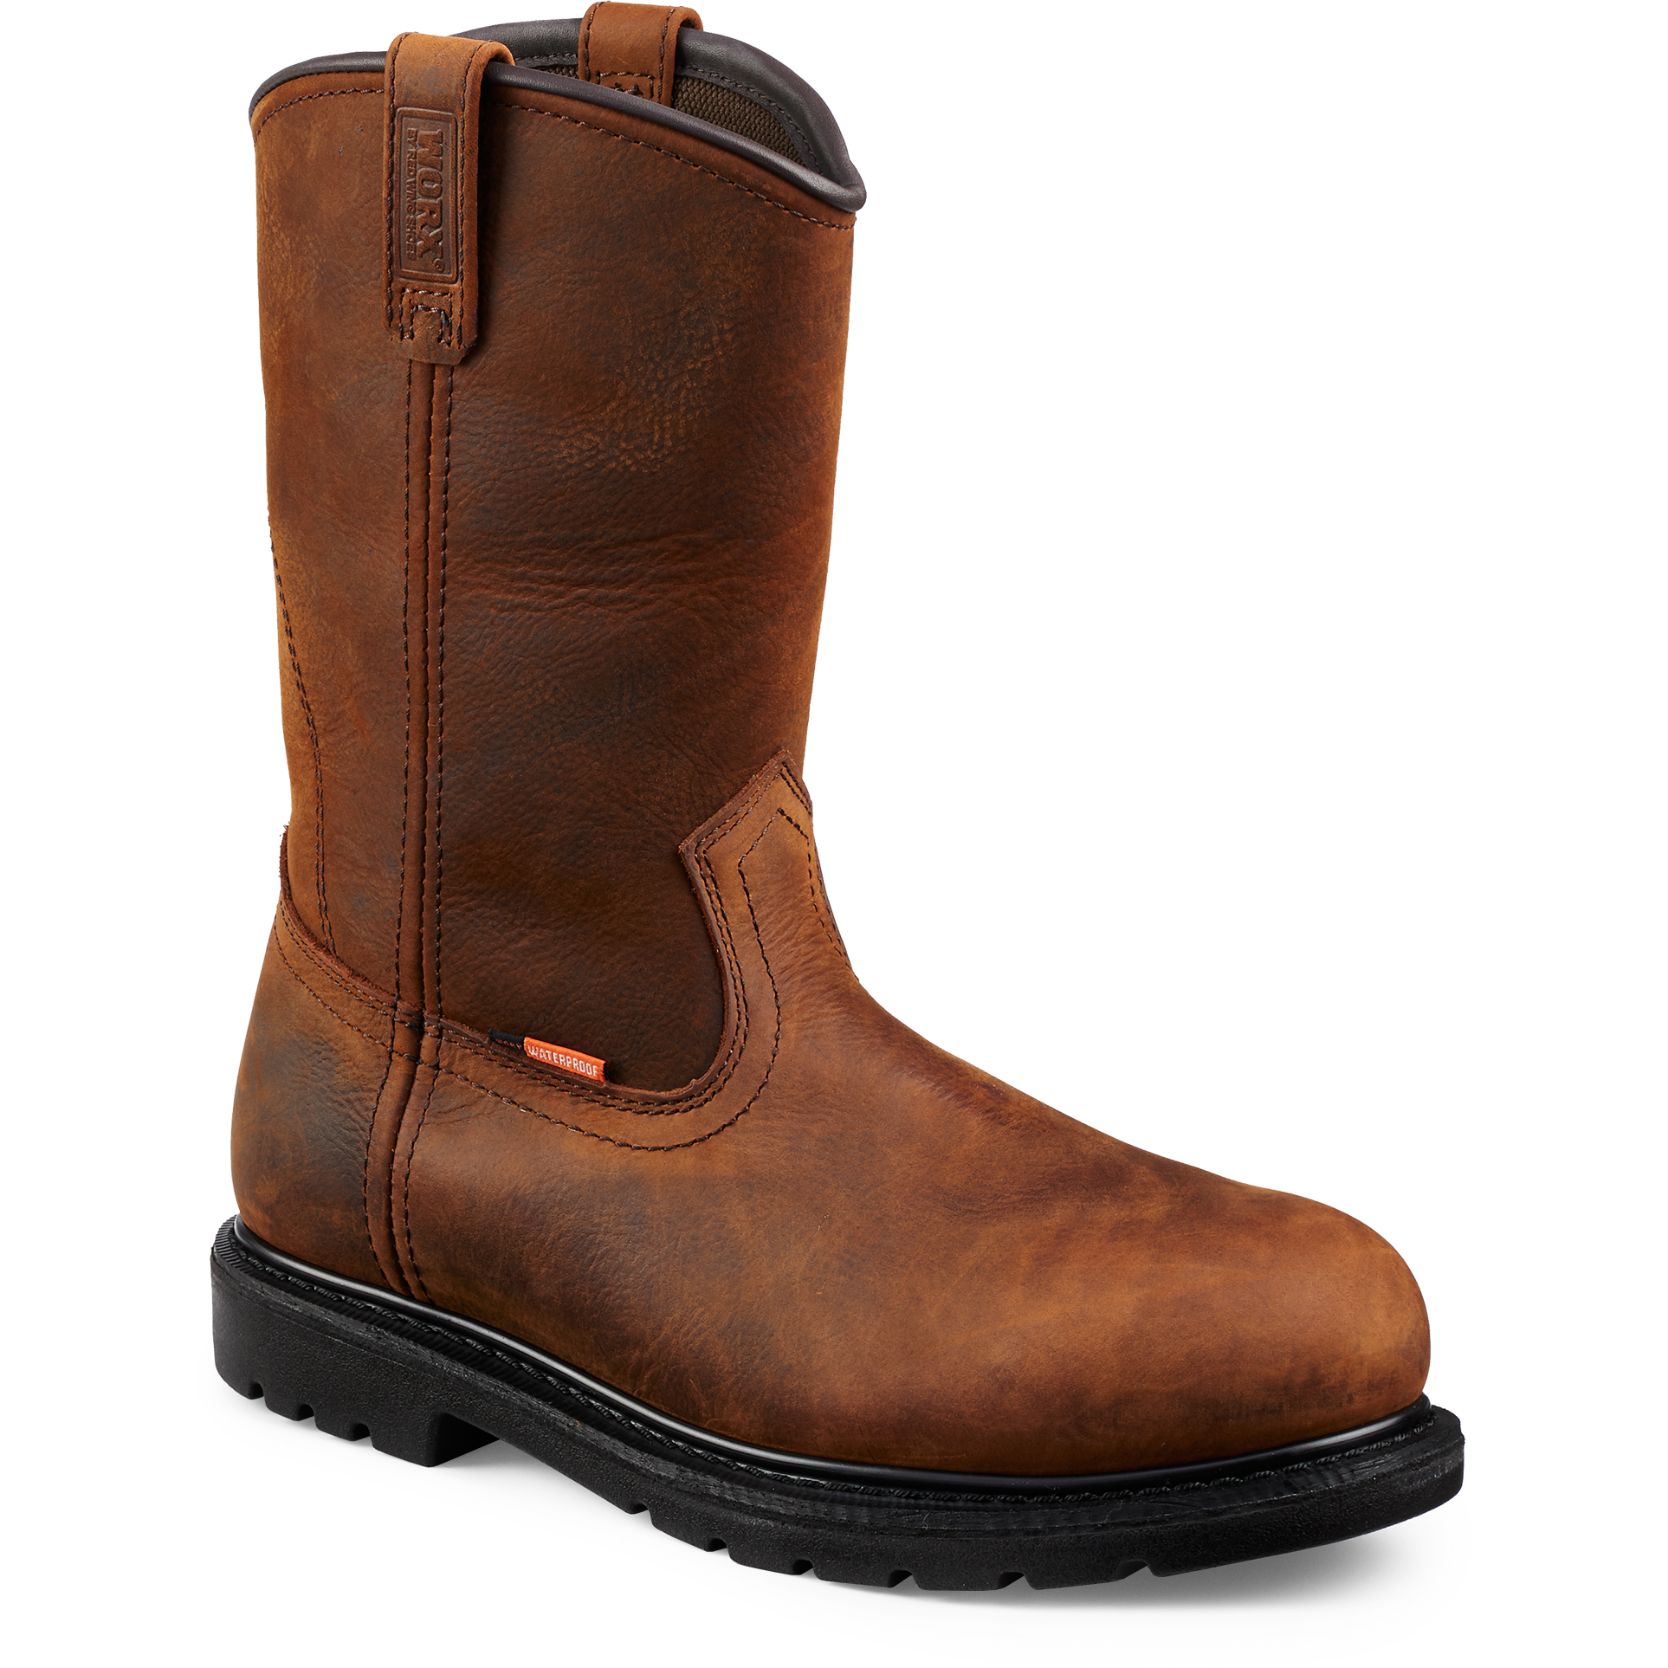 Worx 5700 - 10 Inch Pull On Boot Brown  Steel Toe - Waterproof - Electrical Hazard  Click here for specifications